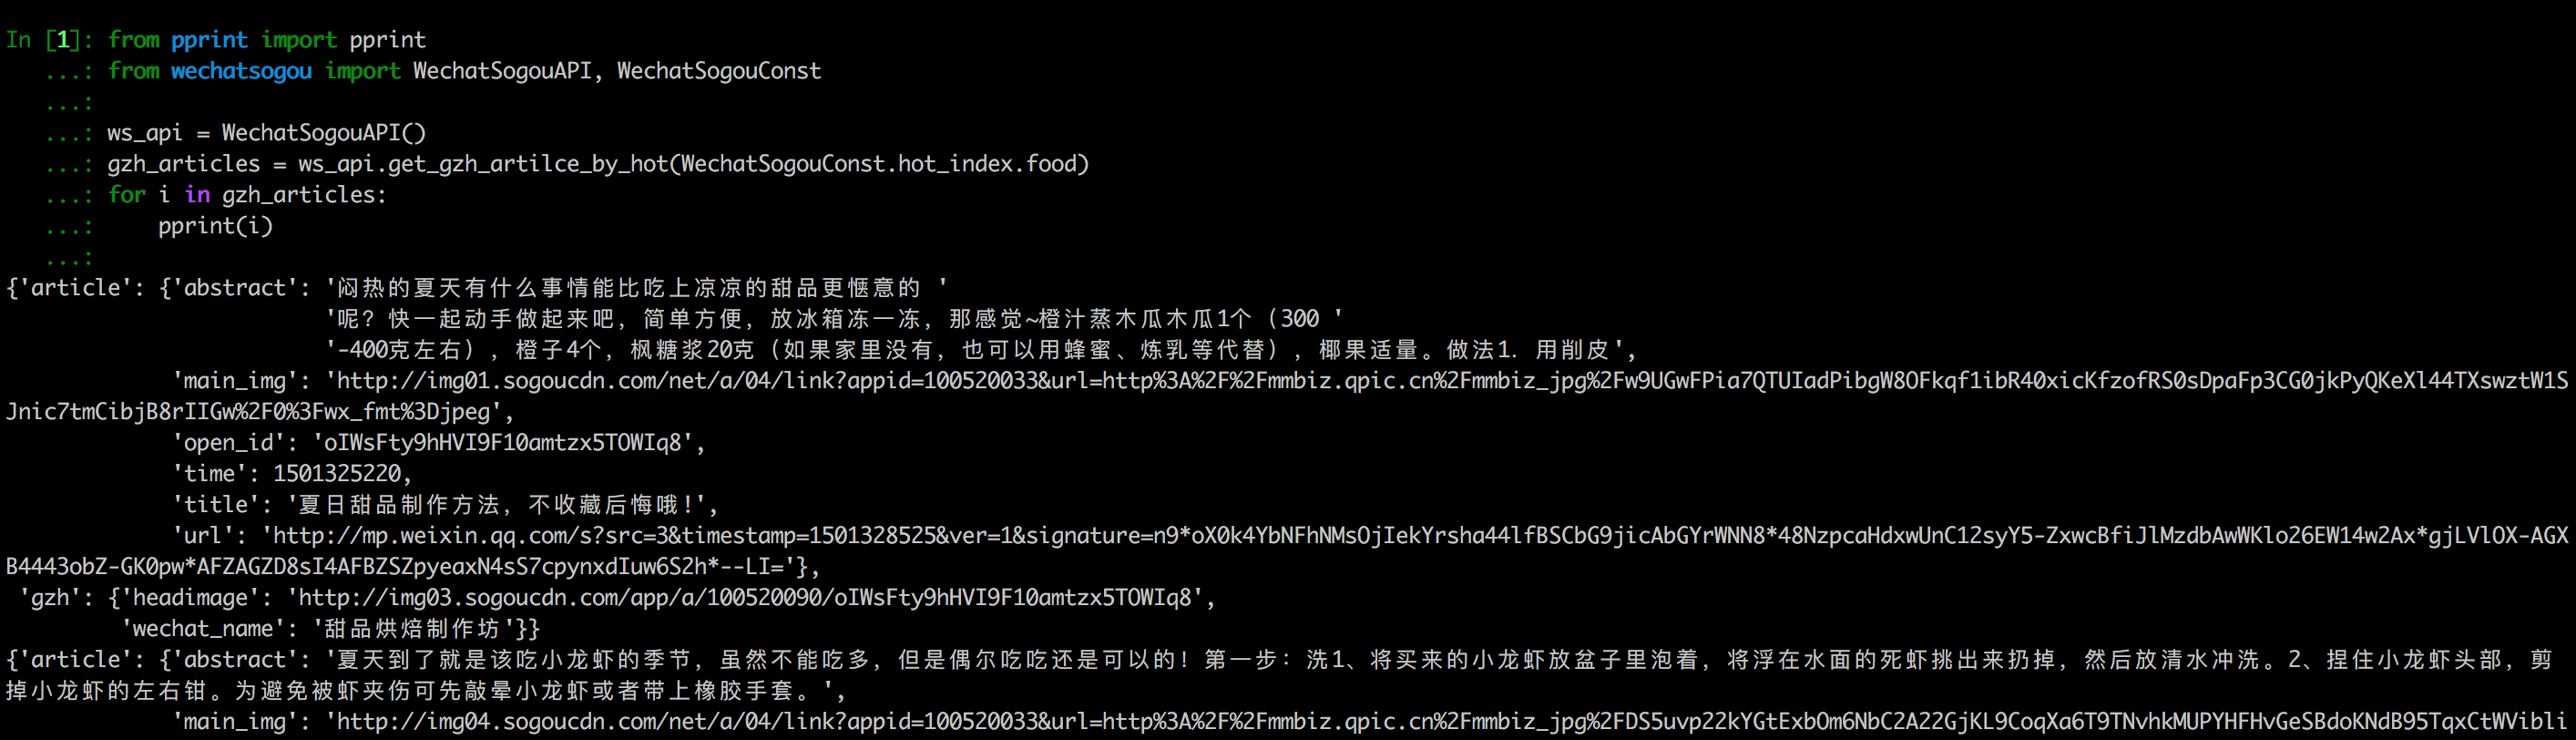 ws_api.get_gzh_article_by_hot(WechatSogouConst.hot_index.food)